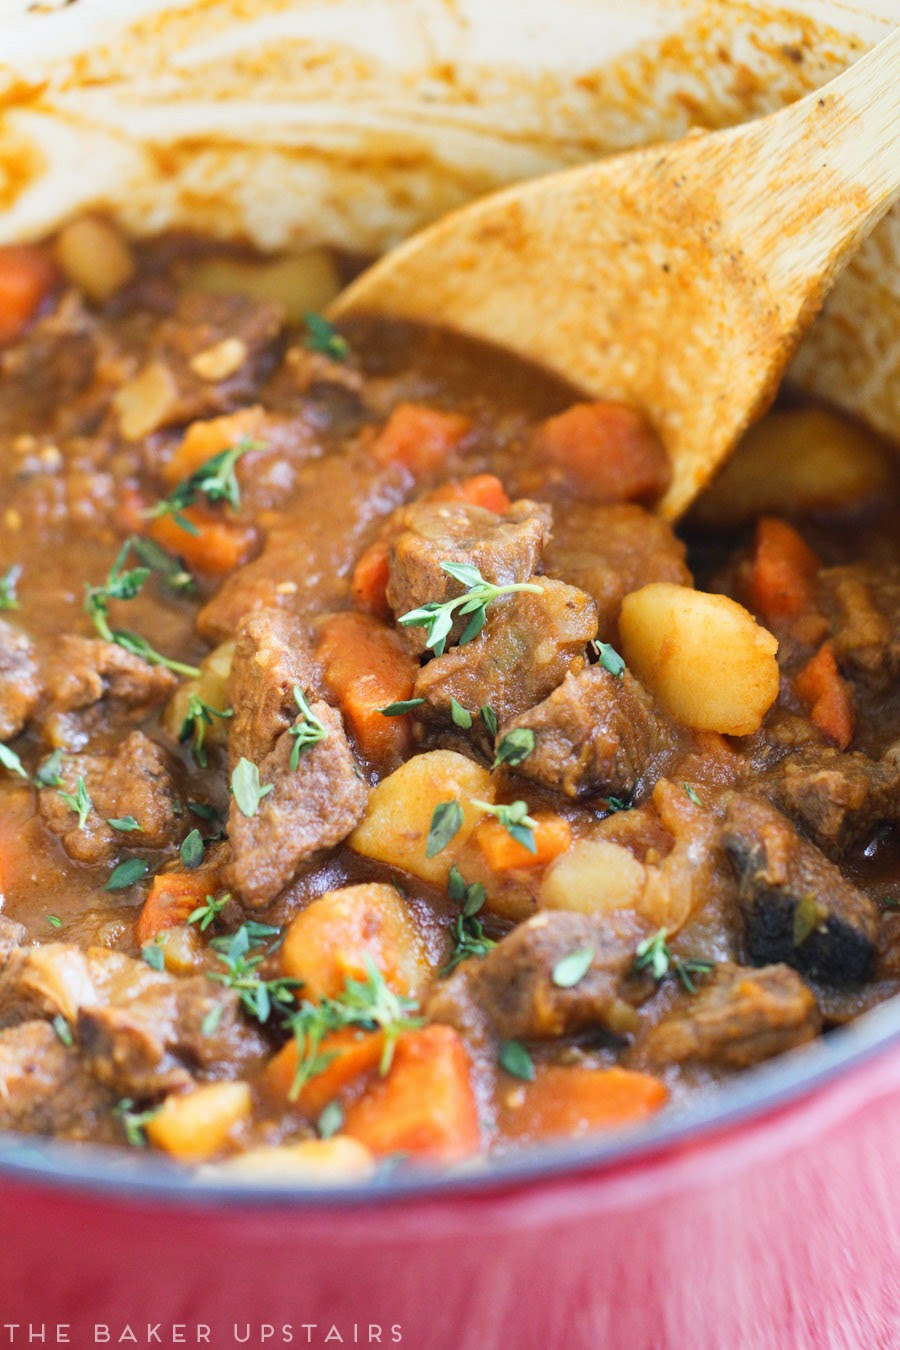 Guinness beef stew - so rich, savory, and delicious!